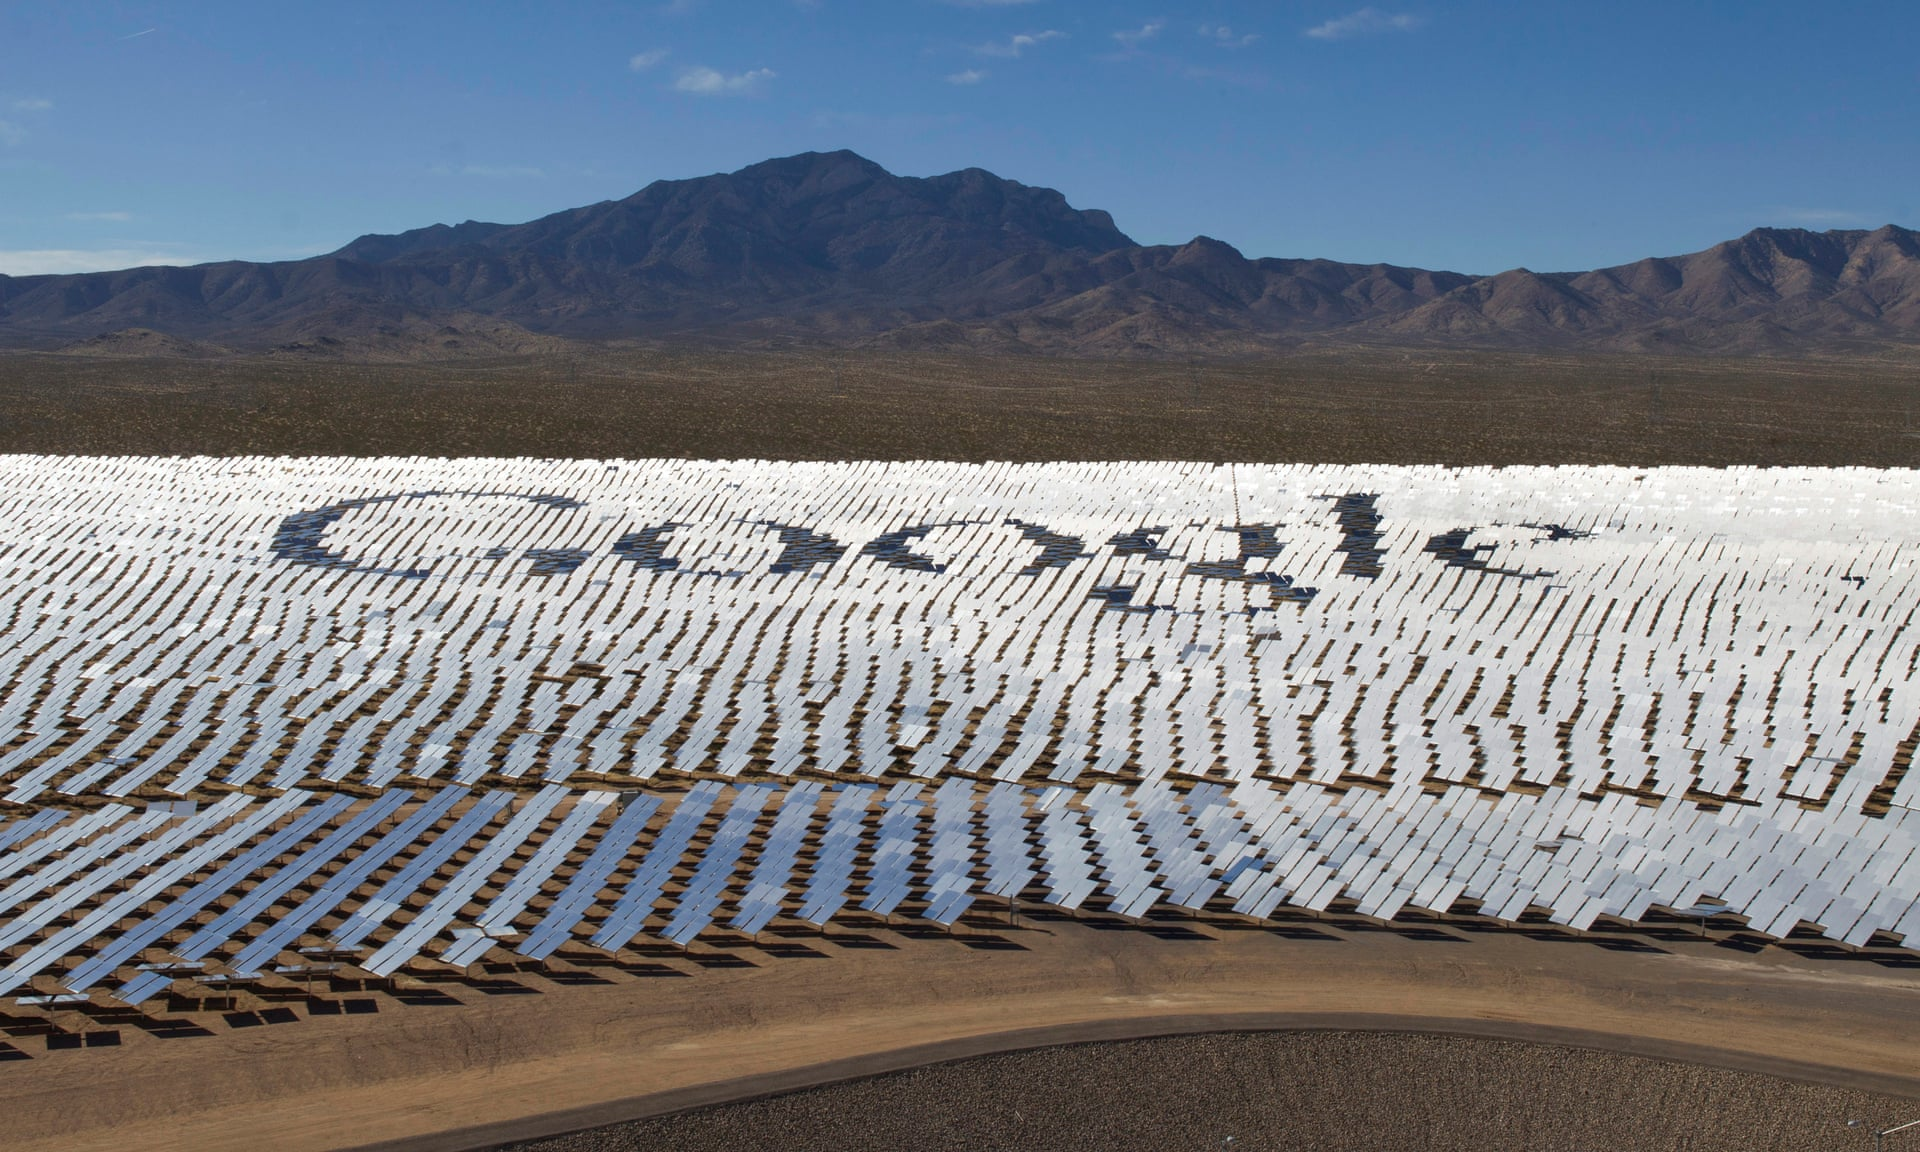 The Google logo is spelled out in heliostats (mirrors that reflect sunlight) at the Ivanpah solar electric generating system in the Mojave Desert near the California-Nevada border. Photograph: Steve Marcus/Reuters